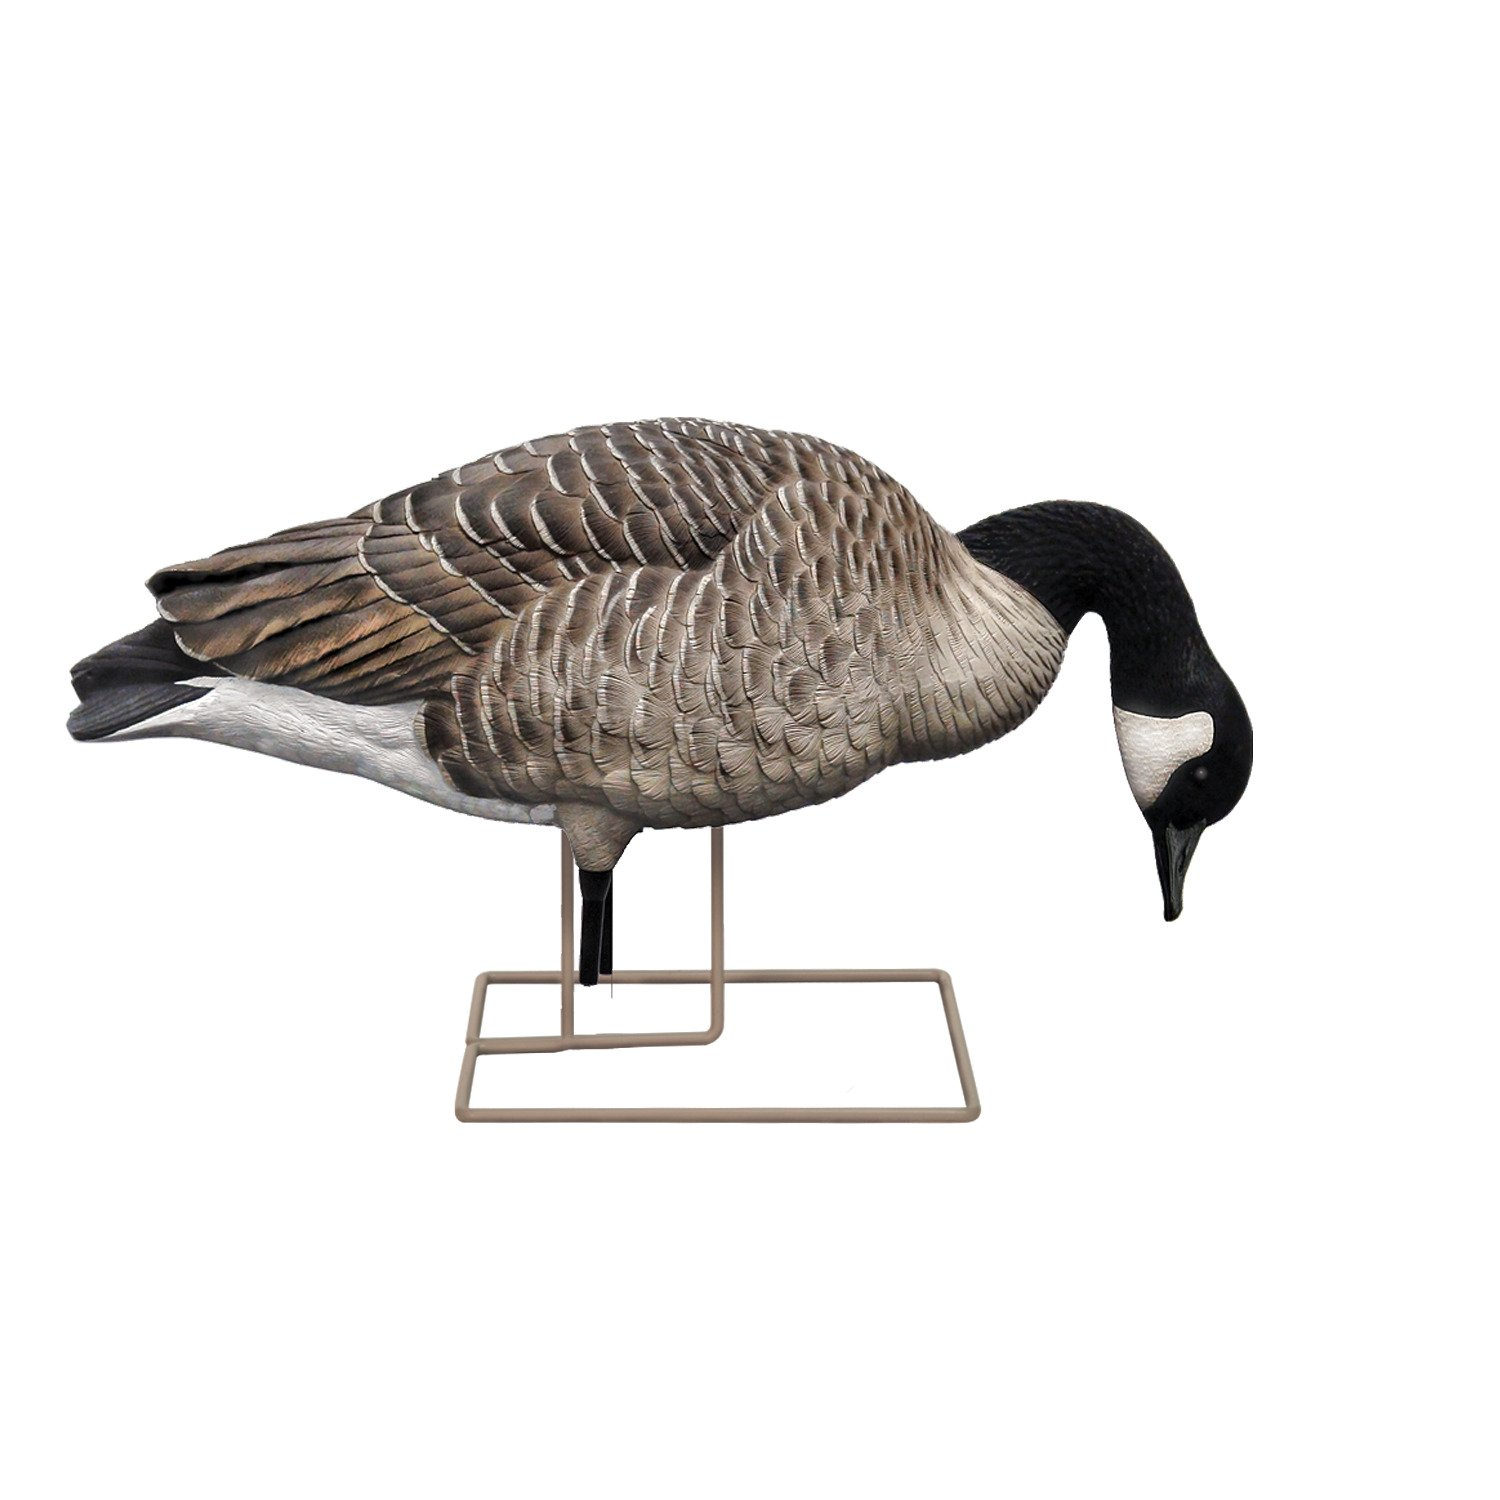 Avian-X AXP Painted Honkers Fusion Goose Decoys 6-Pack - view number 5